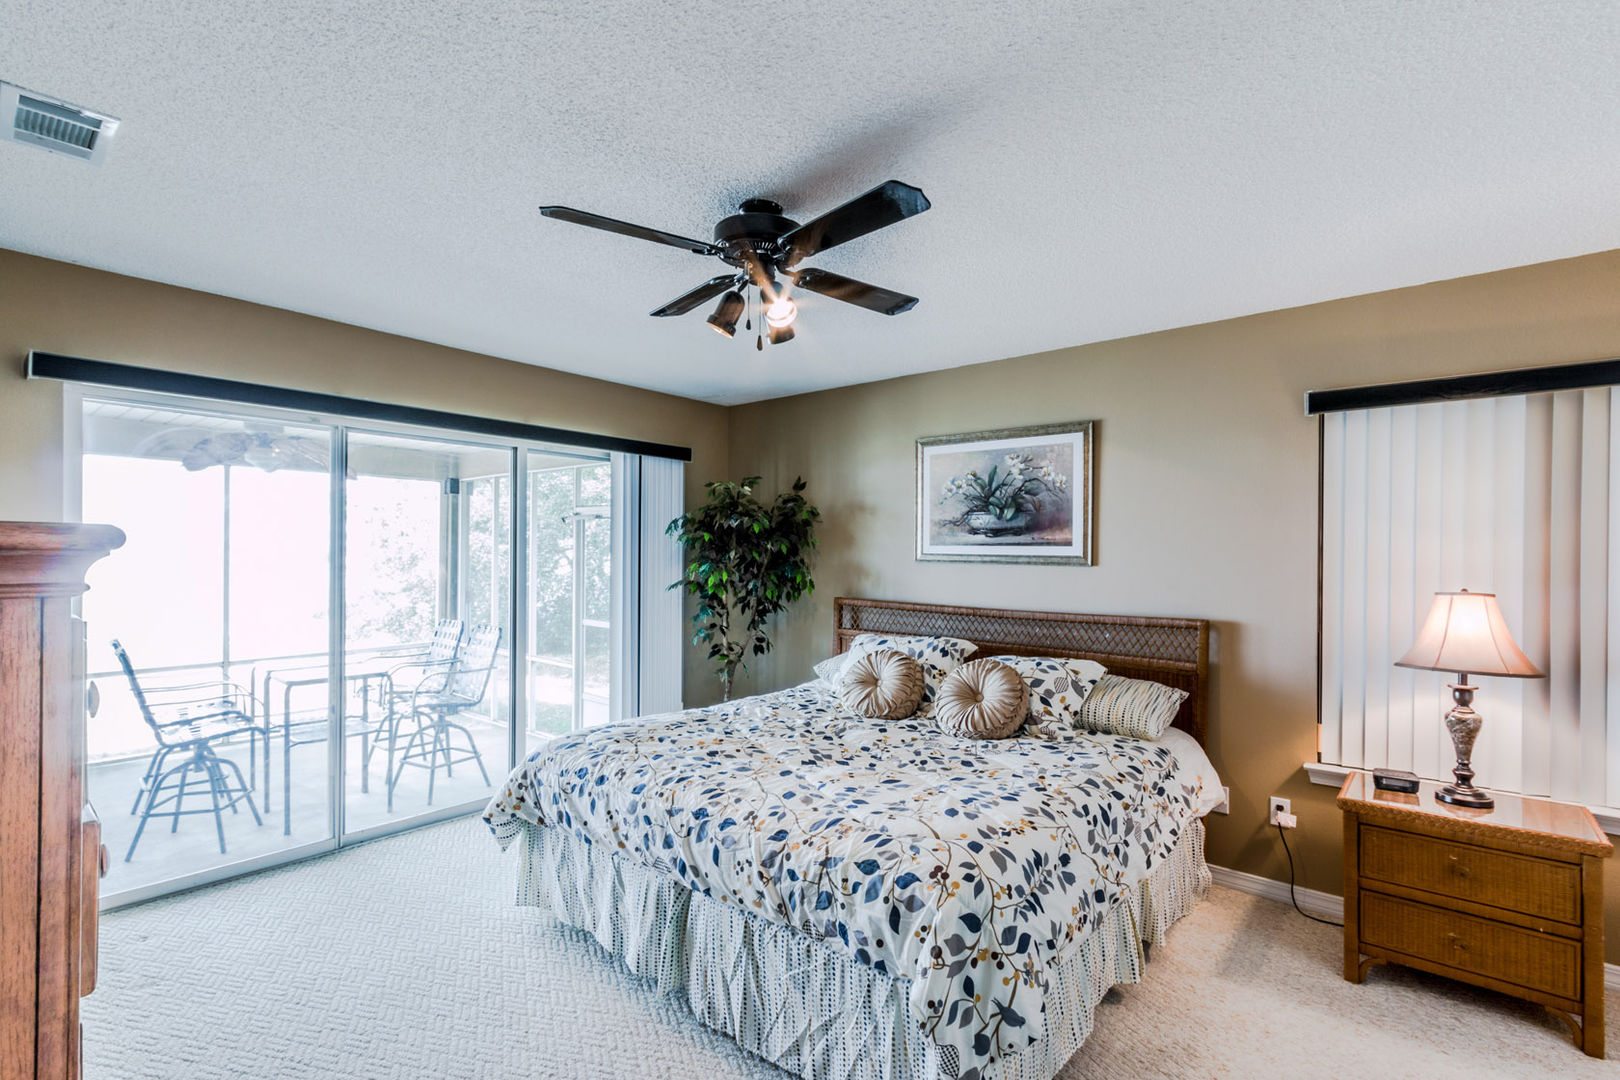 Master Has A King Bed, nightstands, and large dresser.